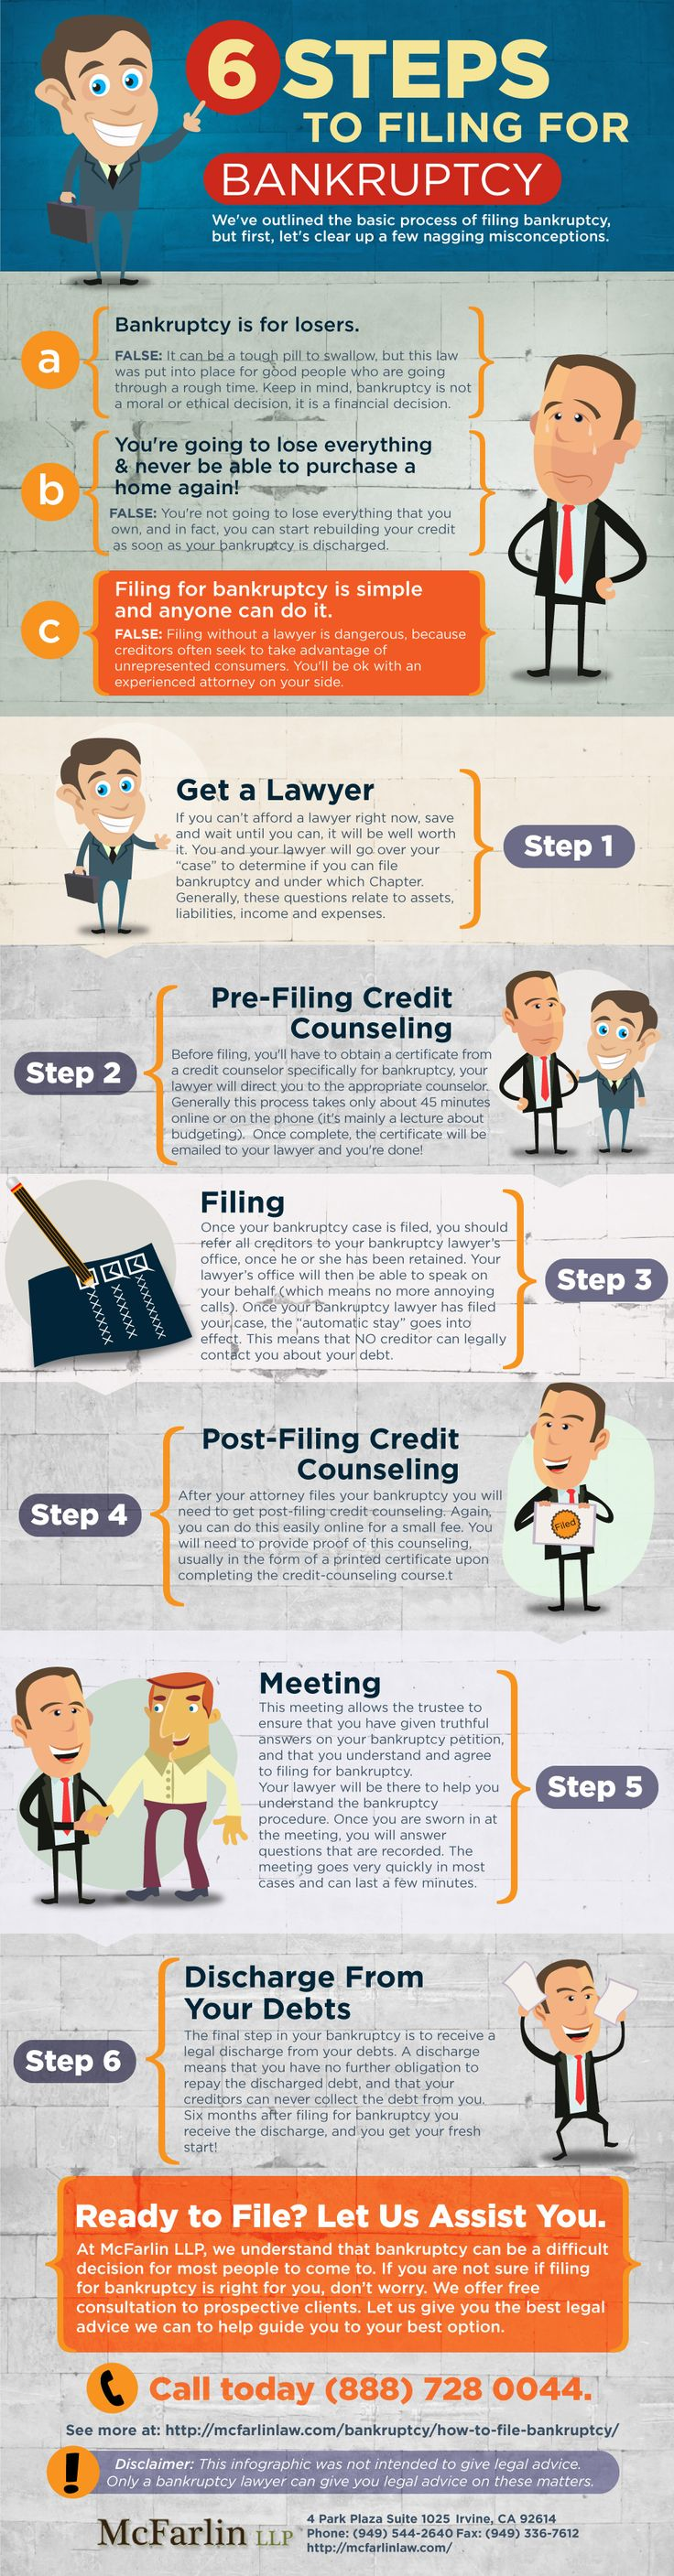 "Los Angeles Bankruptcy Attorneys at McFarlin LLP have successfully handled thousands of bankruptcy cases throughout California. Bankruptcy is not a moral or emotional decision, it is financial decision. Check out our ""6 Easy Steps To Filing For Bankruptcy"" infographic, and contact us today at (888) 728 0044 to speak with one of our bankruptcy lawyers."